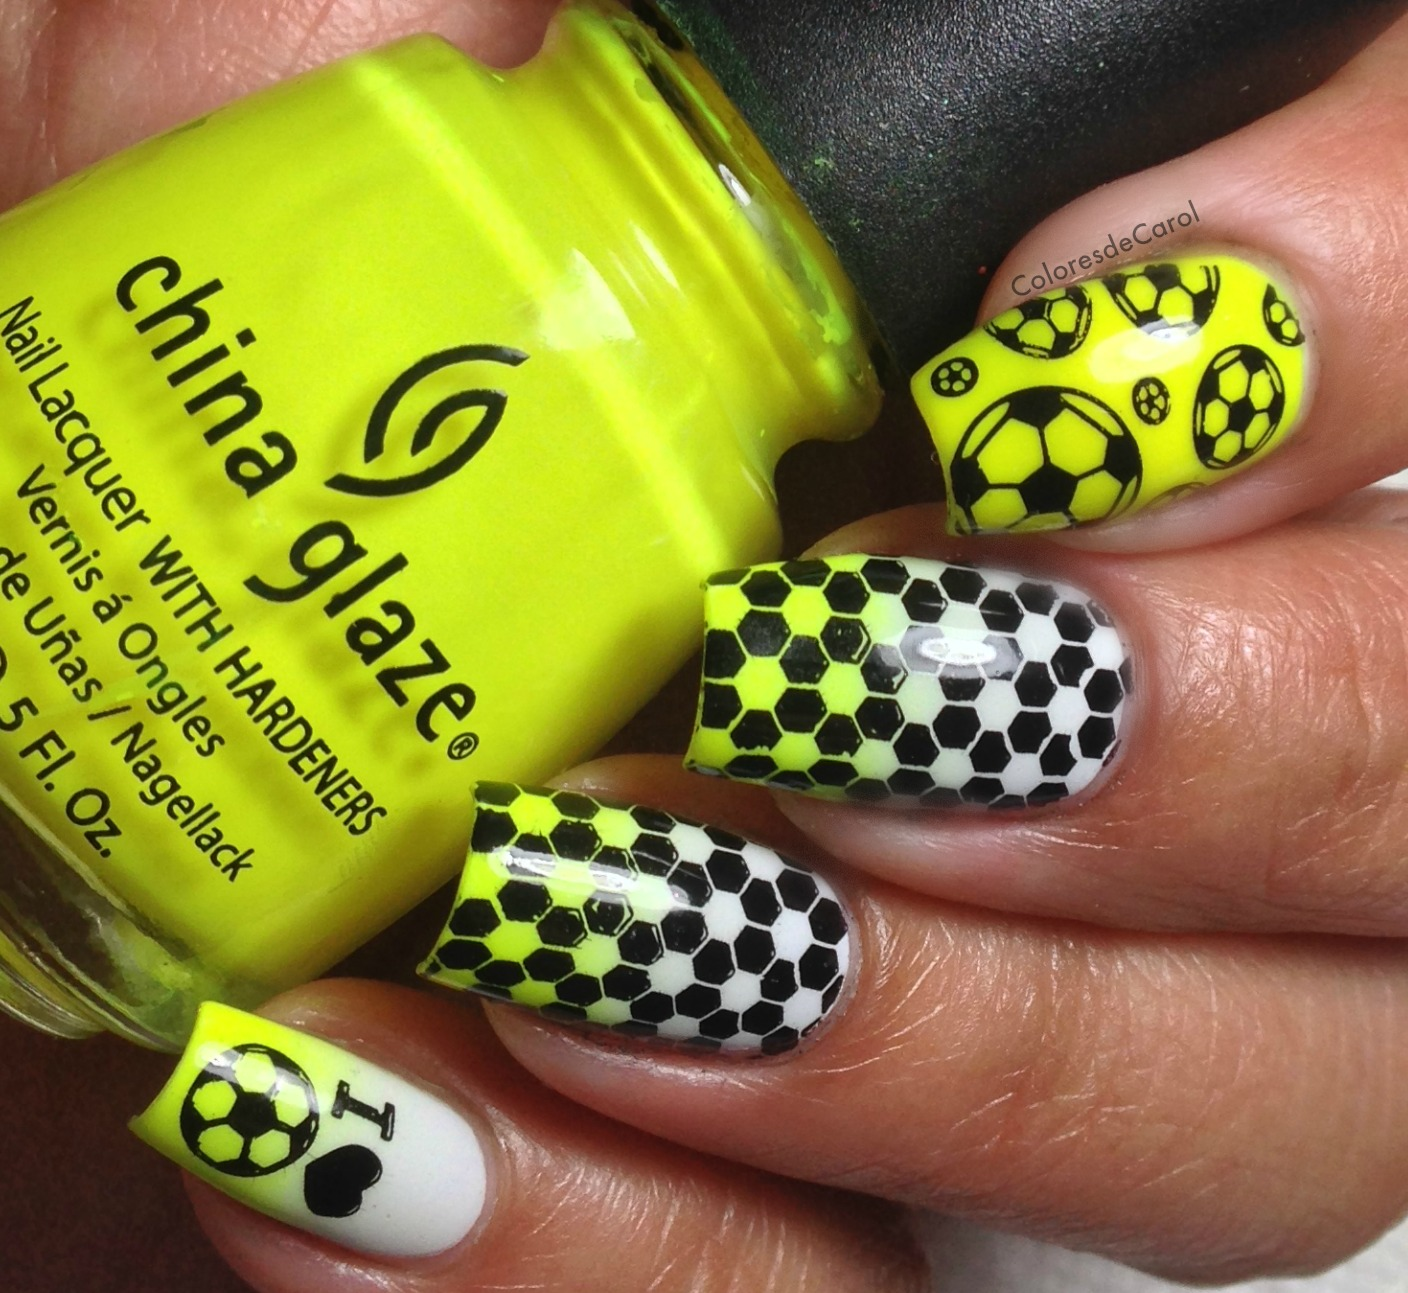 ... using the plate Soccer Mania I bought from Winstonia. I did a gradient  with OPI My Boyfriend Scales Walls and China Glaze Yellow Polka Dot Bikini. - Colores De Carol: Winstonia Nail Art Stamping Image Plate - Soccer